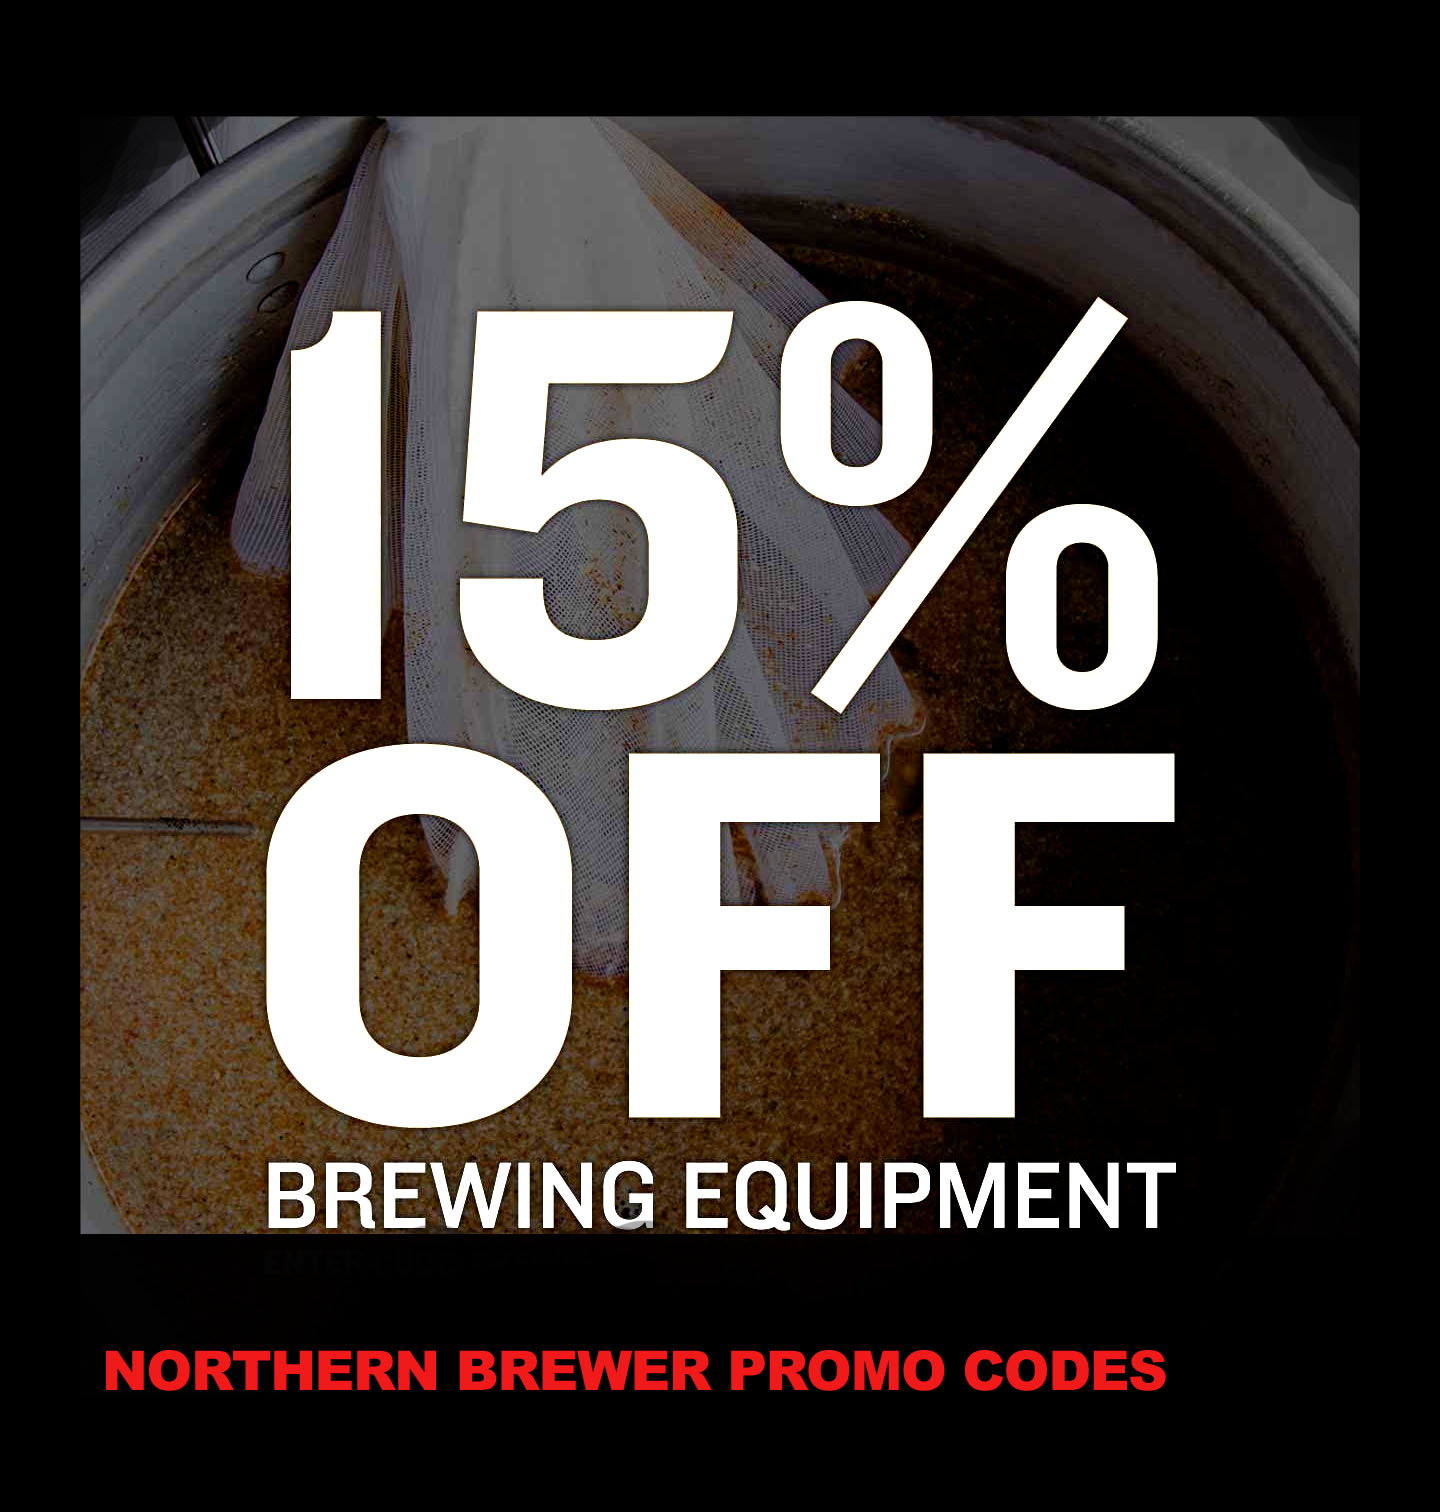 Home Wine Making Coupon Codes for Save 15% On Home Wine Maker Equipment With This NorthernBrewer.com Coupon Code